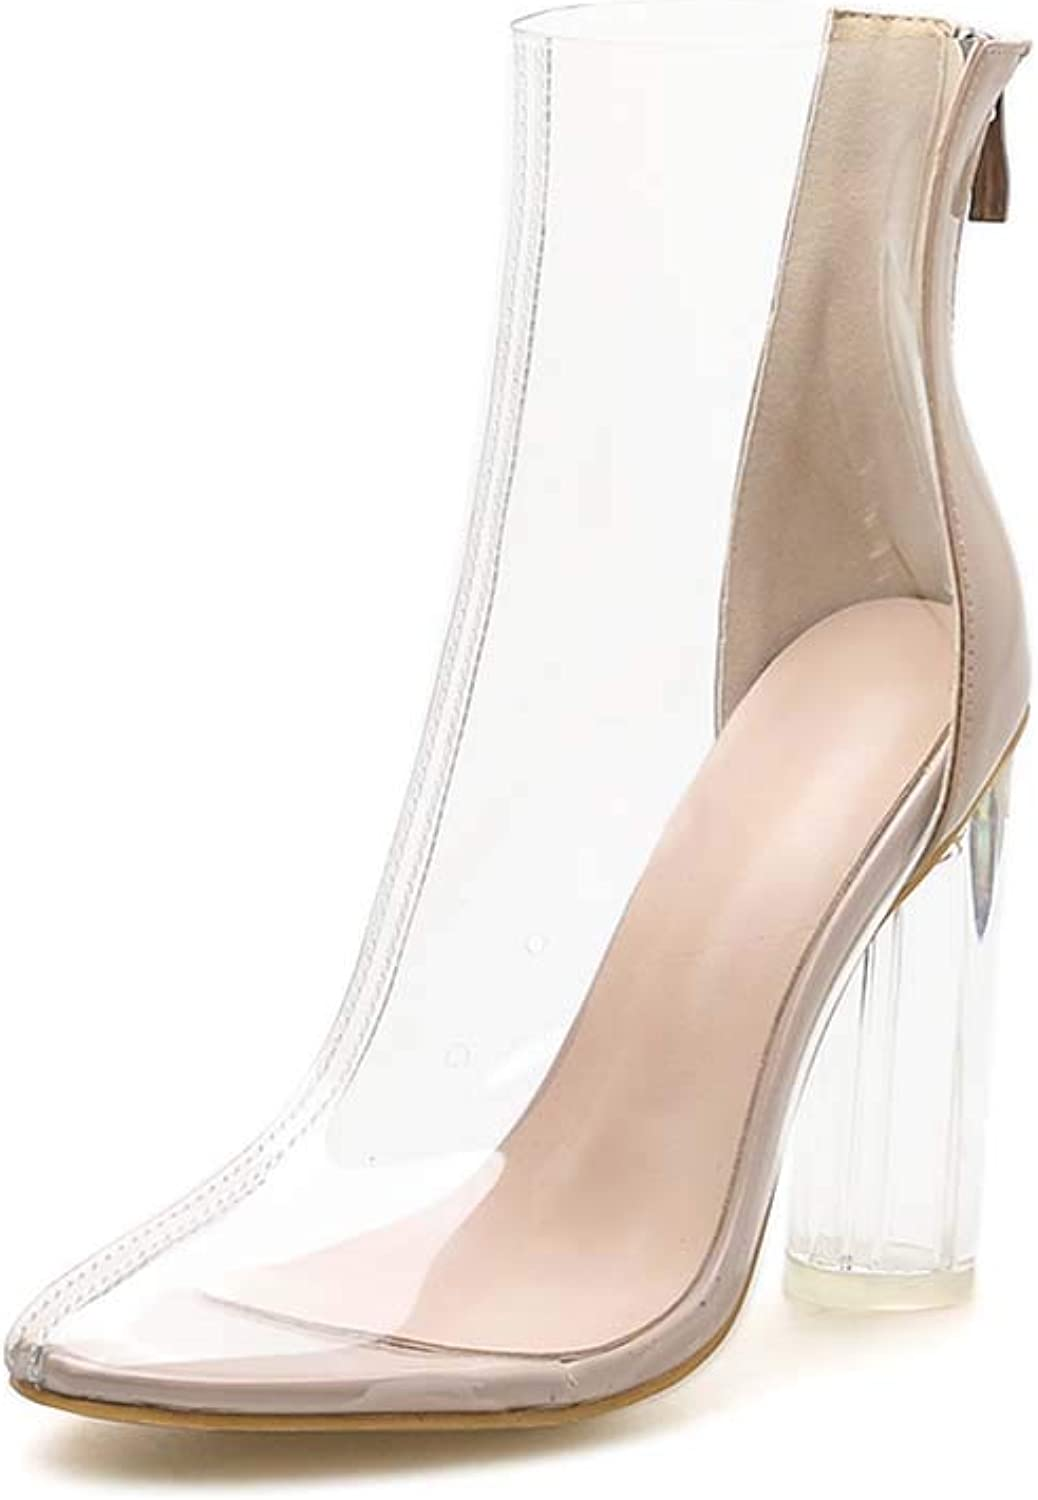 Womens Transparent mid shoes, Crystal Heel with Single Boots Round Head with high Heels